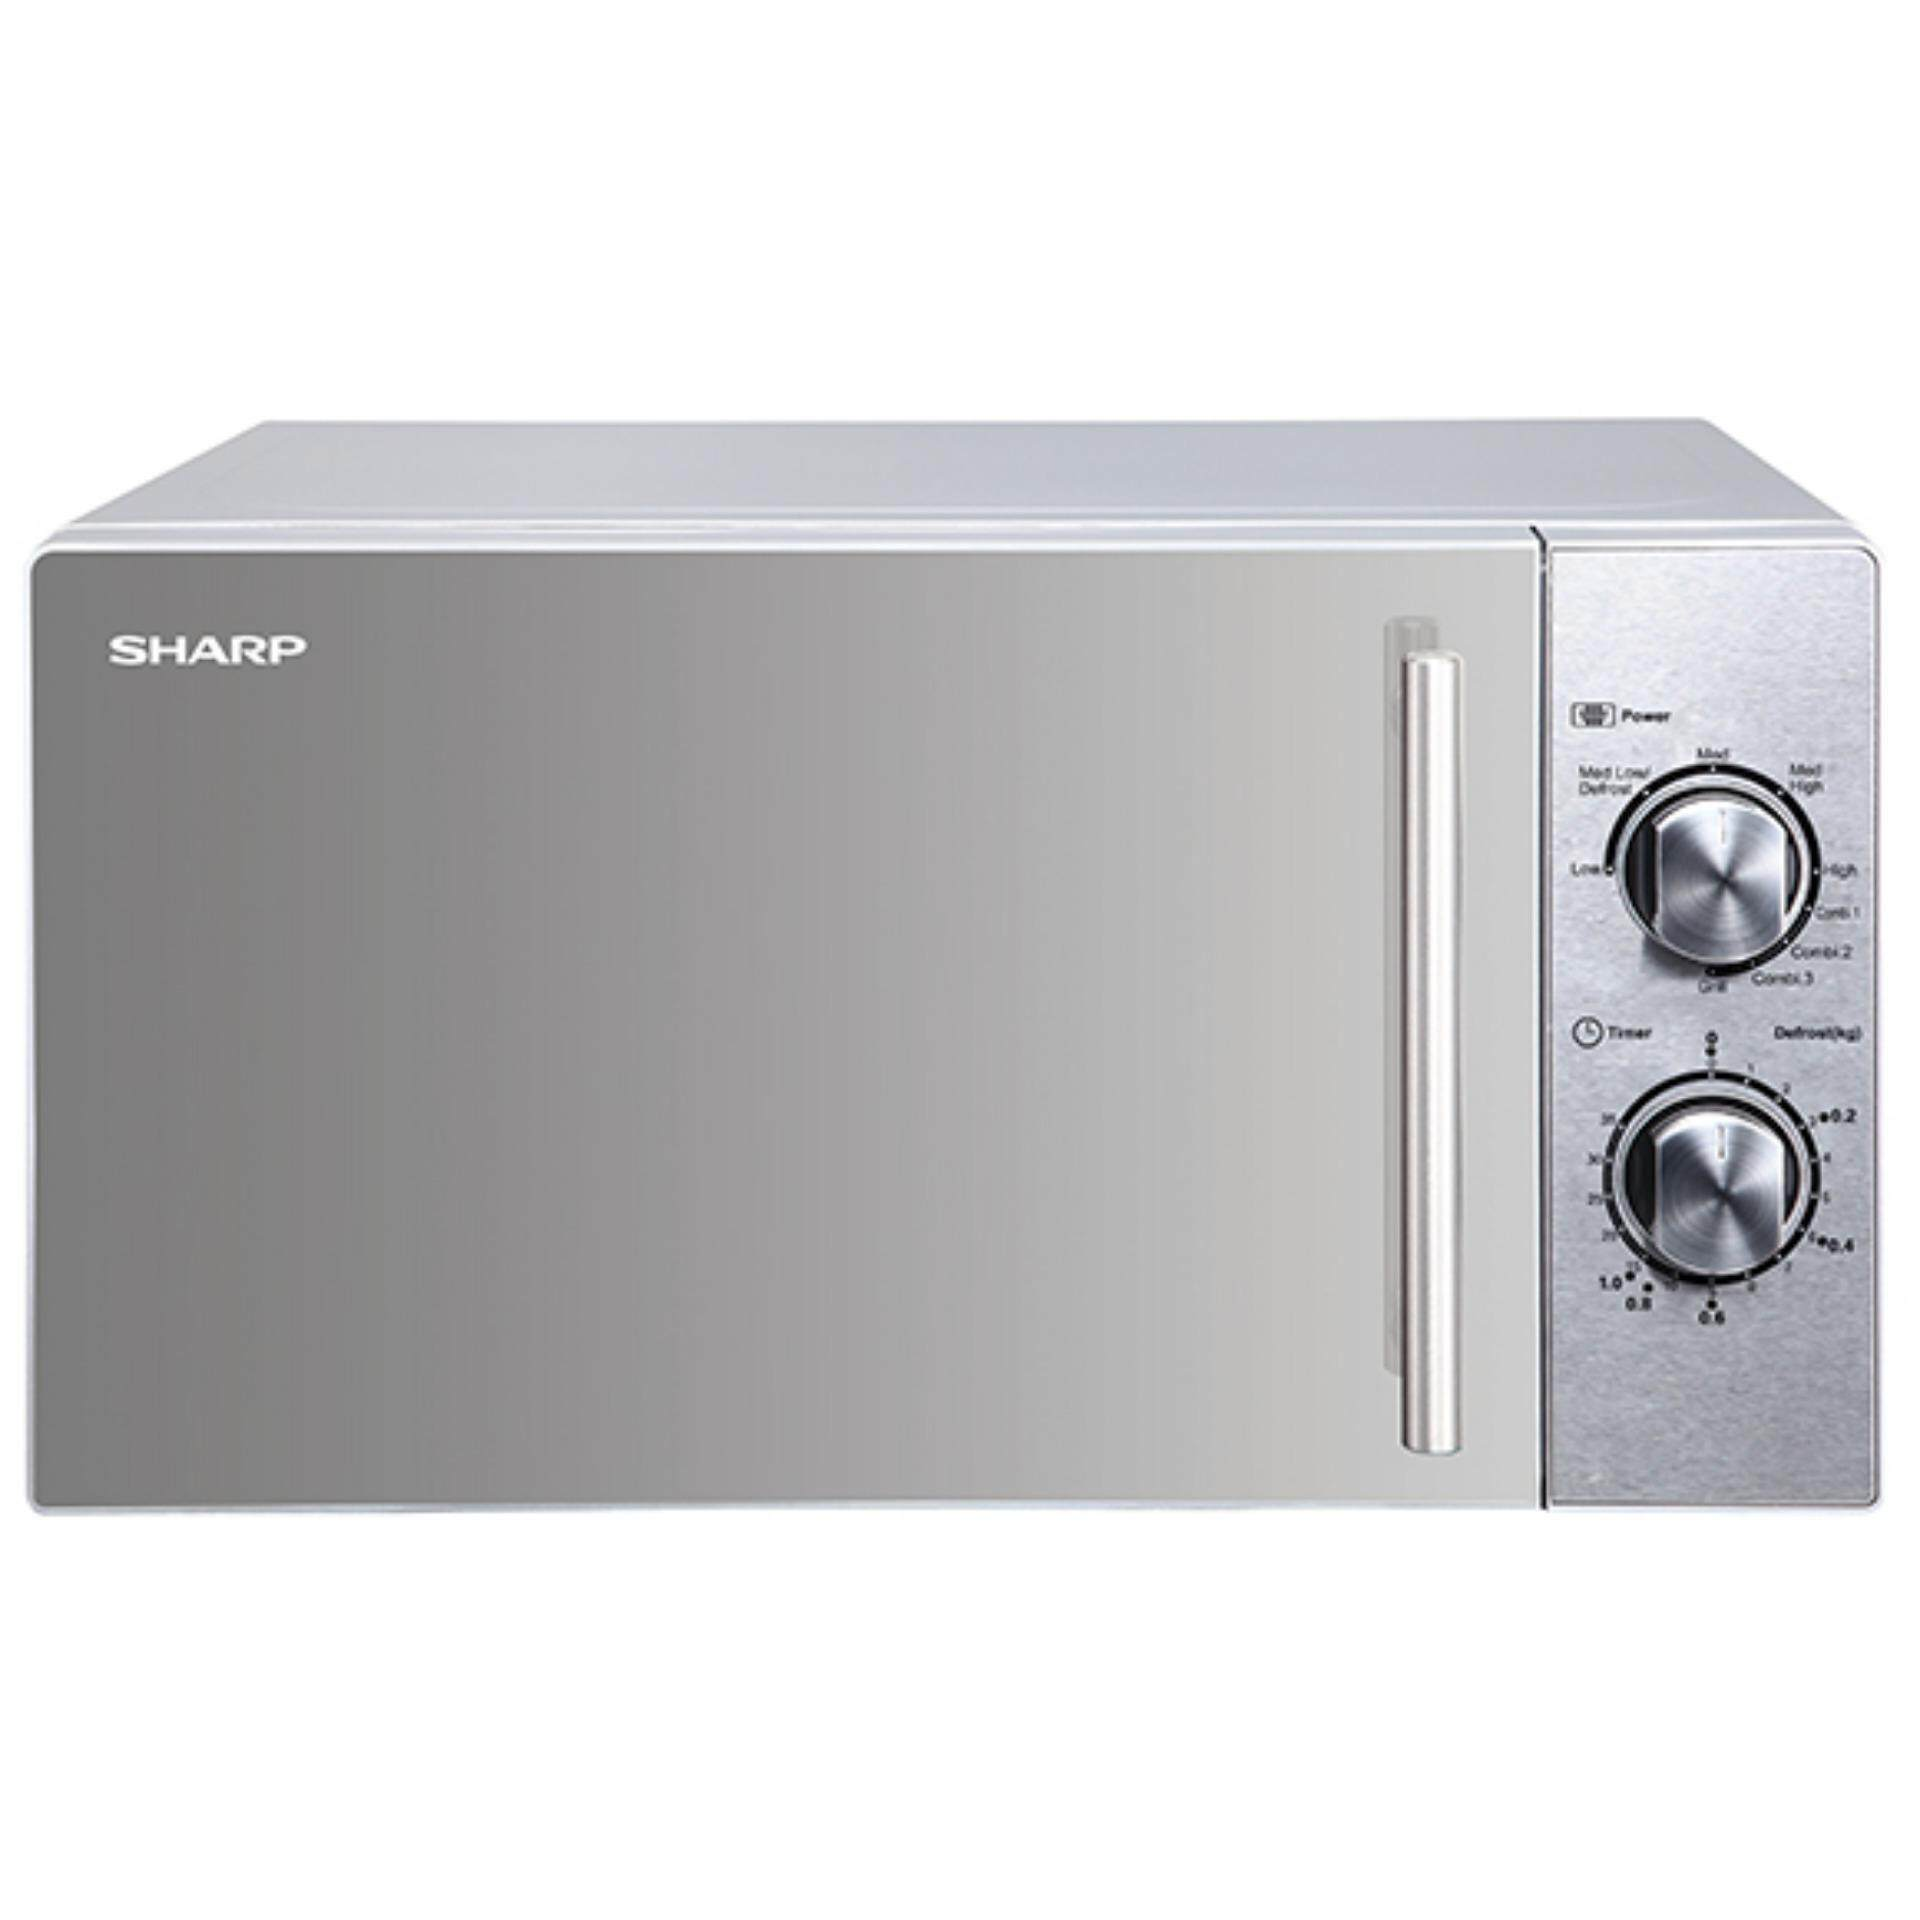 Sharp 20l 800w 1000w Mechanical Grill Microwave R613cst